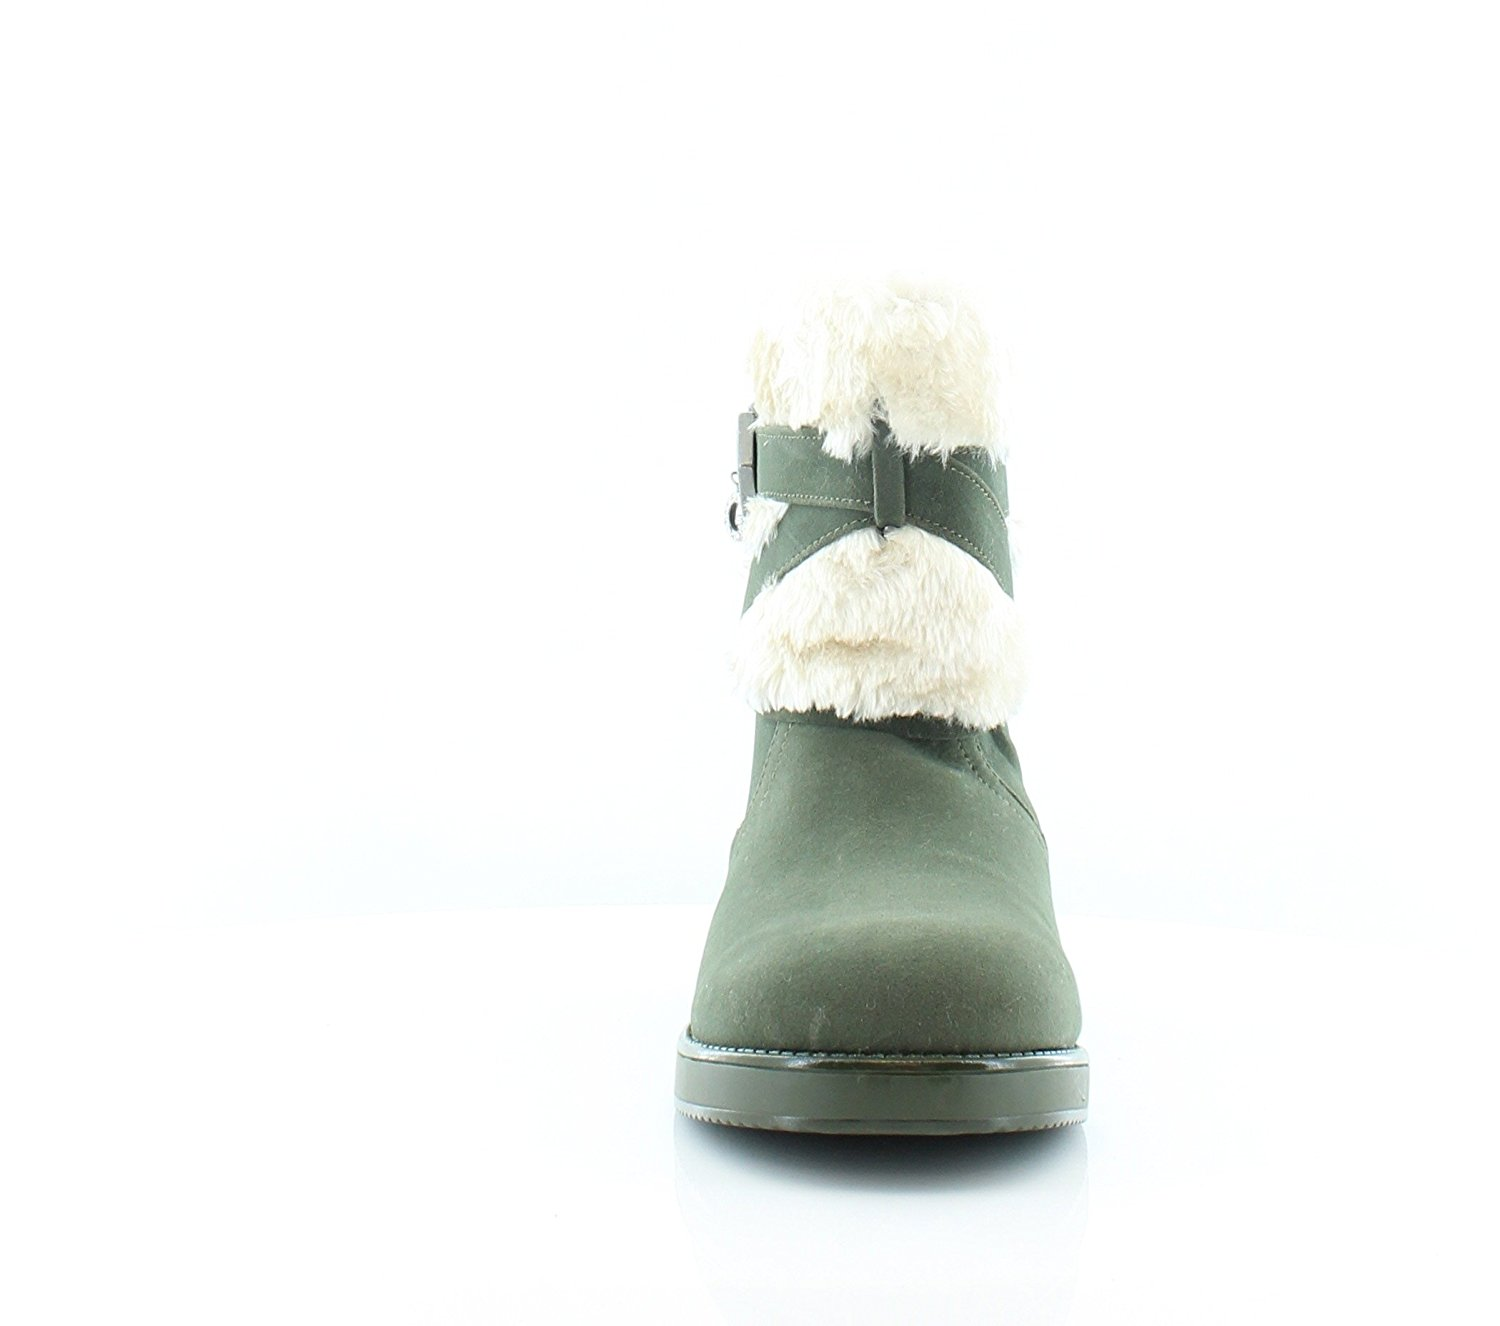 G by Guess Womens alixa Closed Toe Ankle Cold Weather Boots, Green, Size 6.0